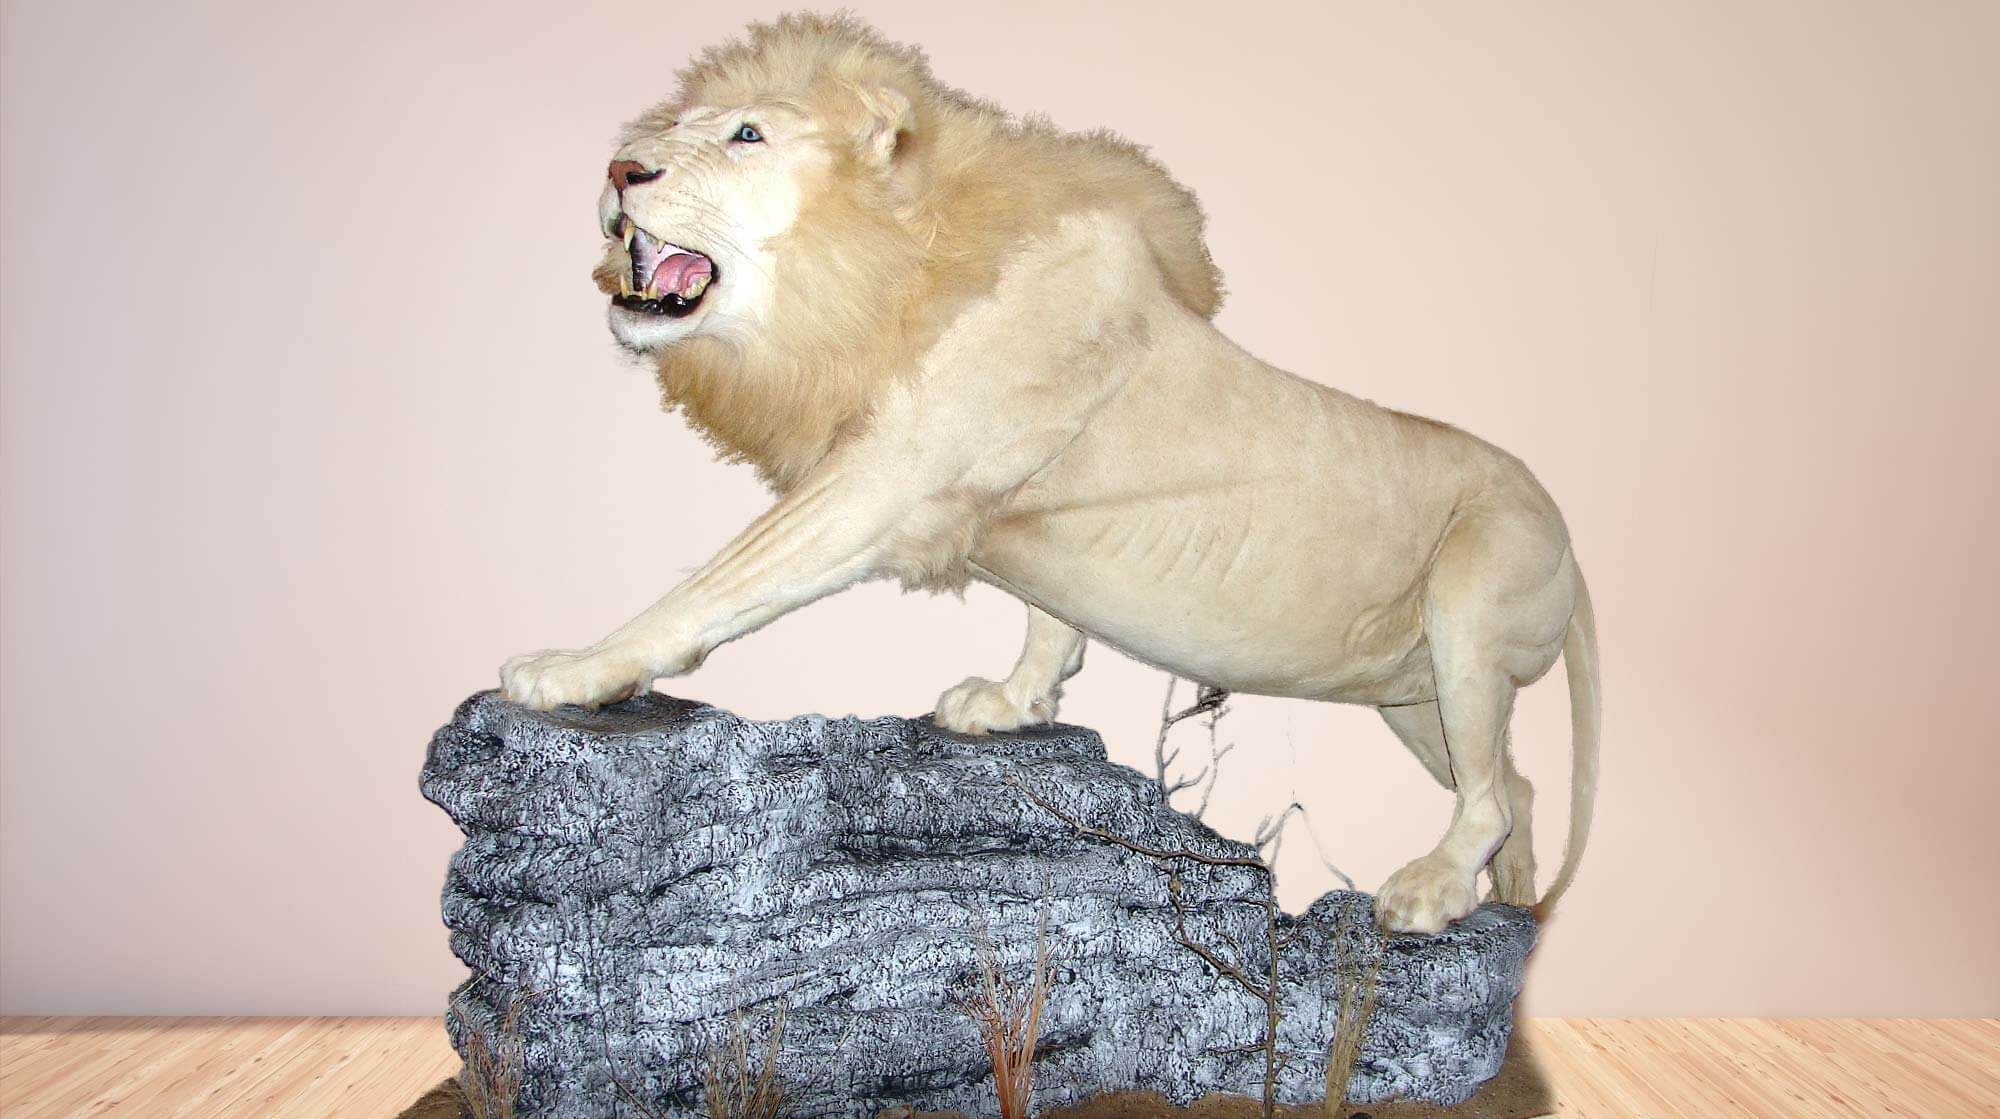 Life size mount of a white maile lion standing on a rock